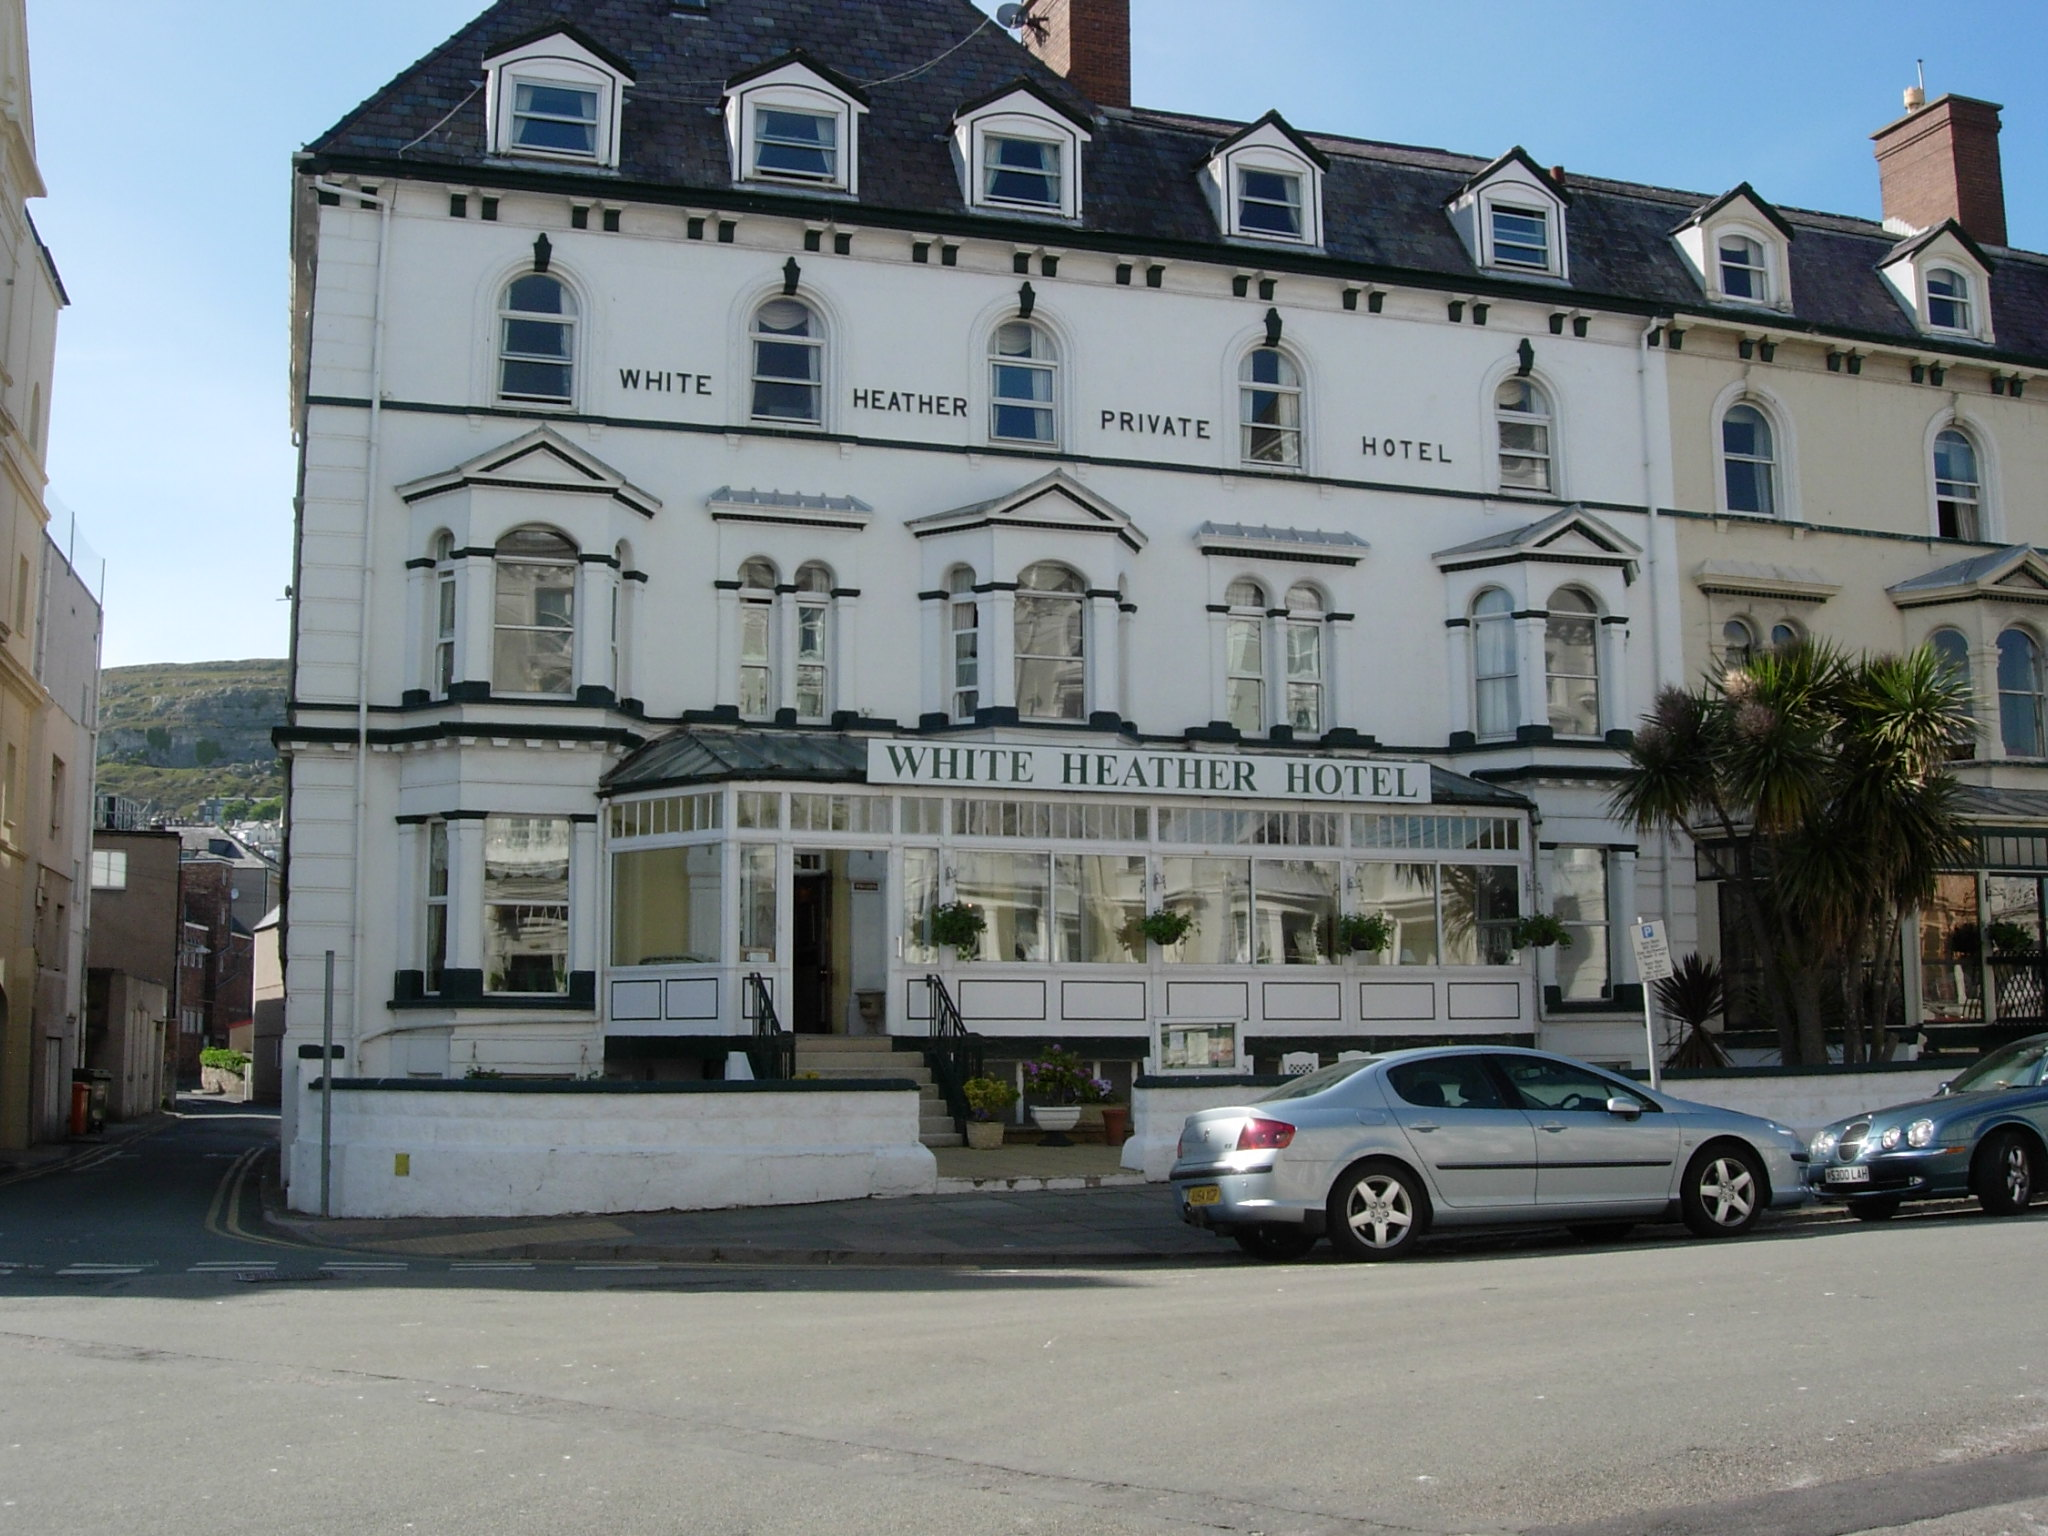 White Heather Hotel